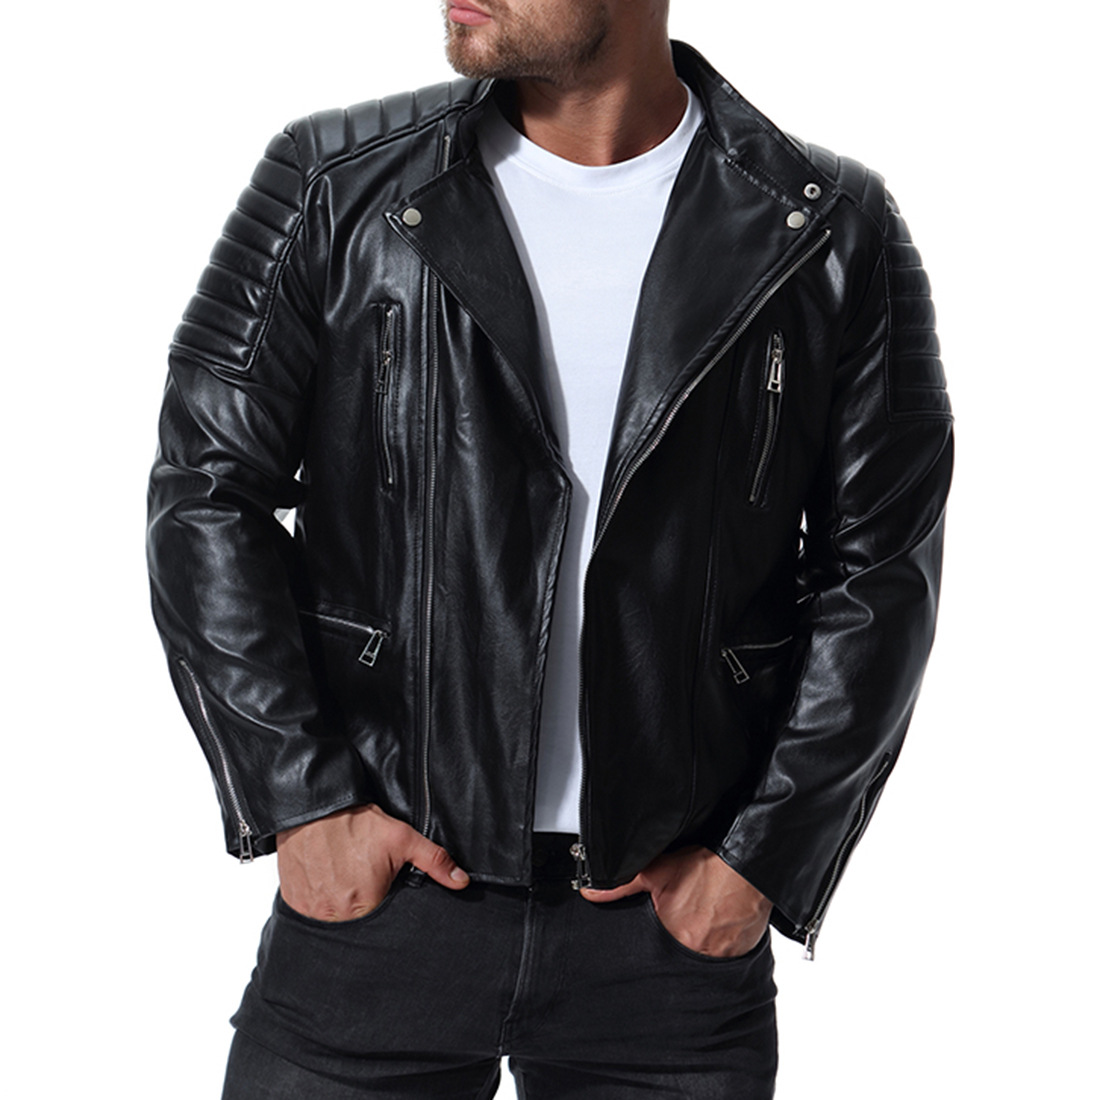 New Men's high-grade Leather Motorcycle bike Jackets Slim Fit Dropshipping Jacket Casual zipper top Coats Mens Brand Clothing